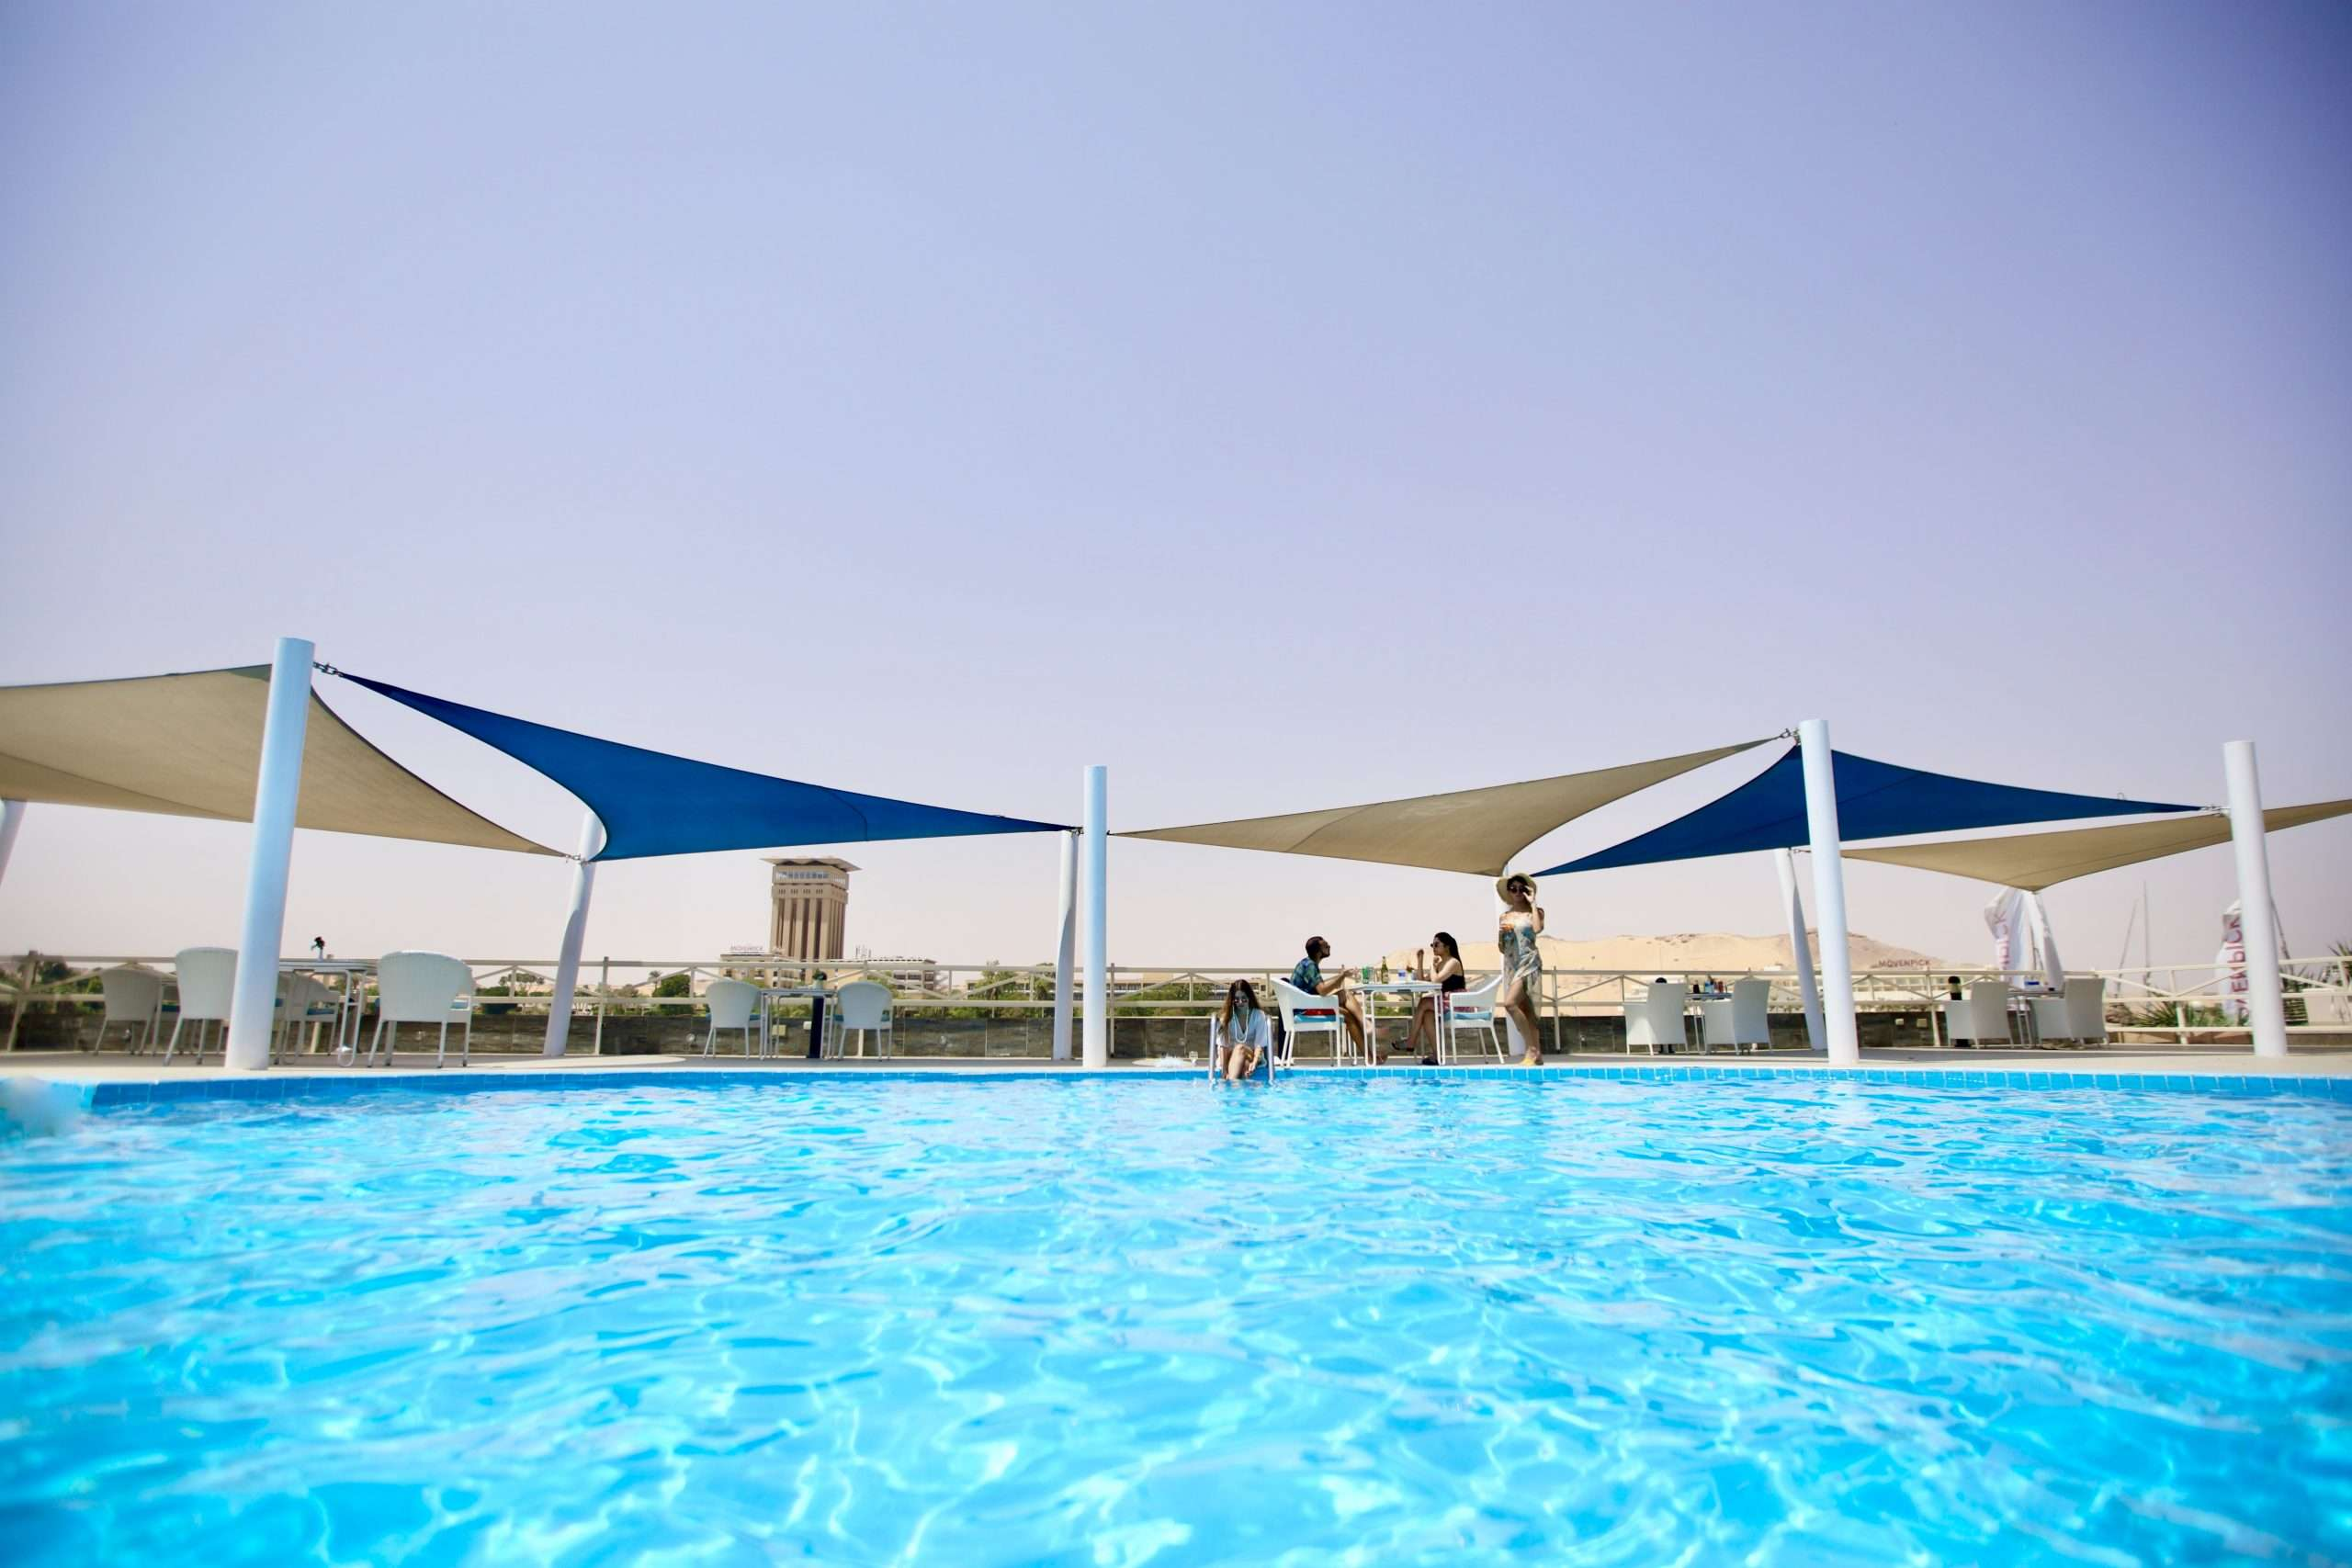 The Pool Over looking the Nile at Obelisk Nile View Hotel in Aswan